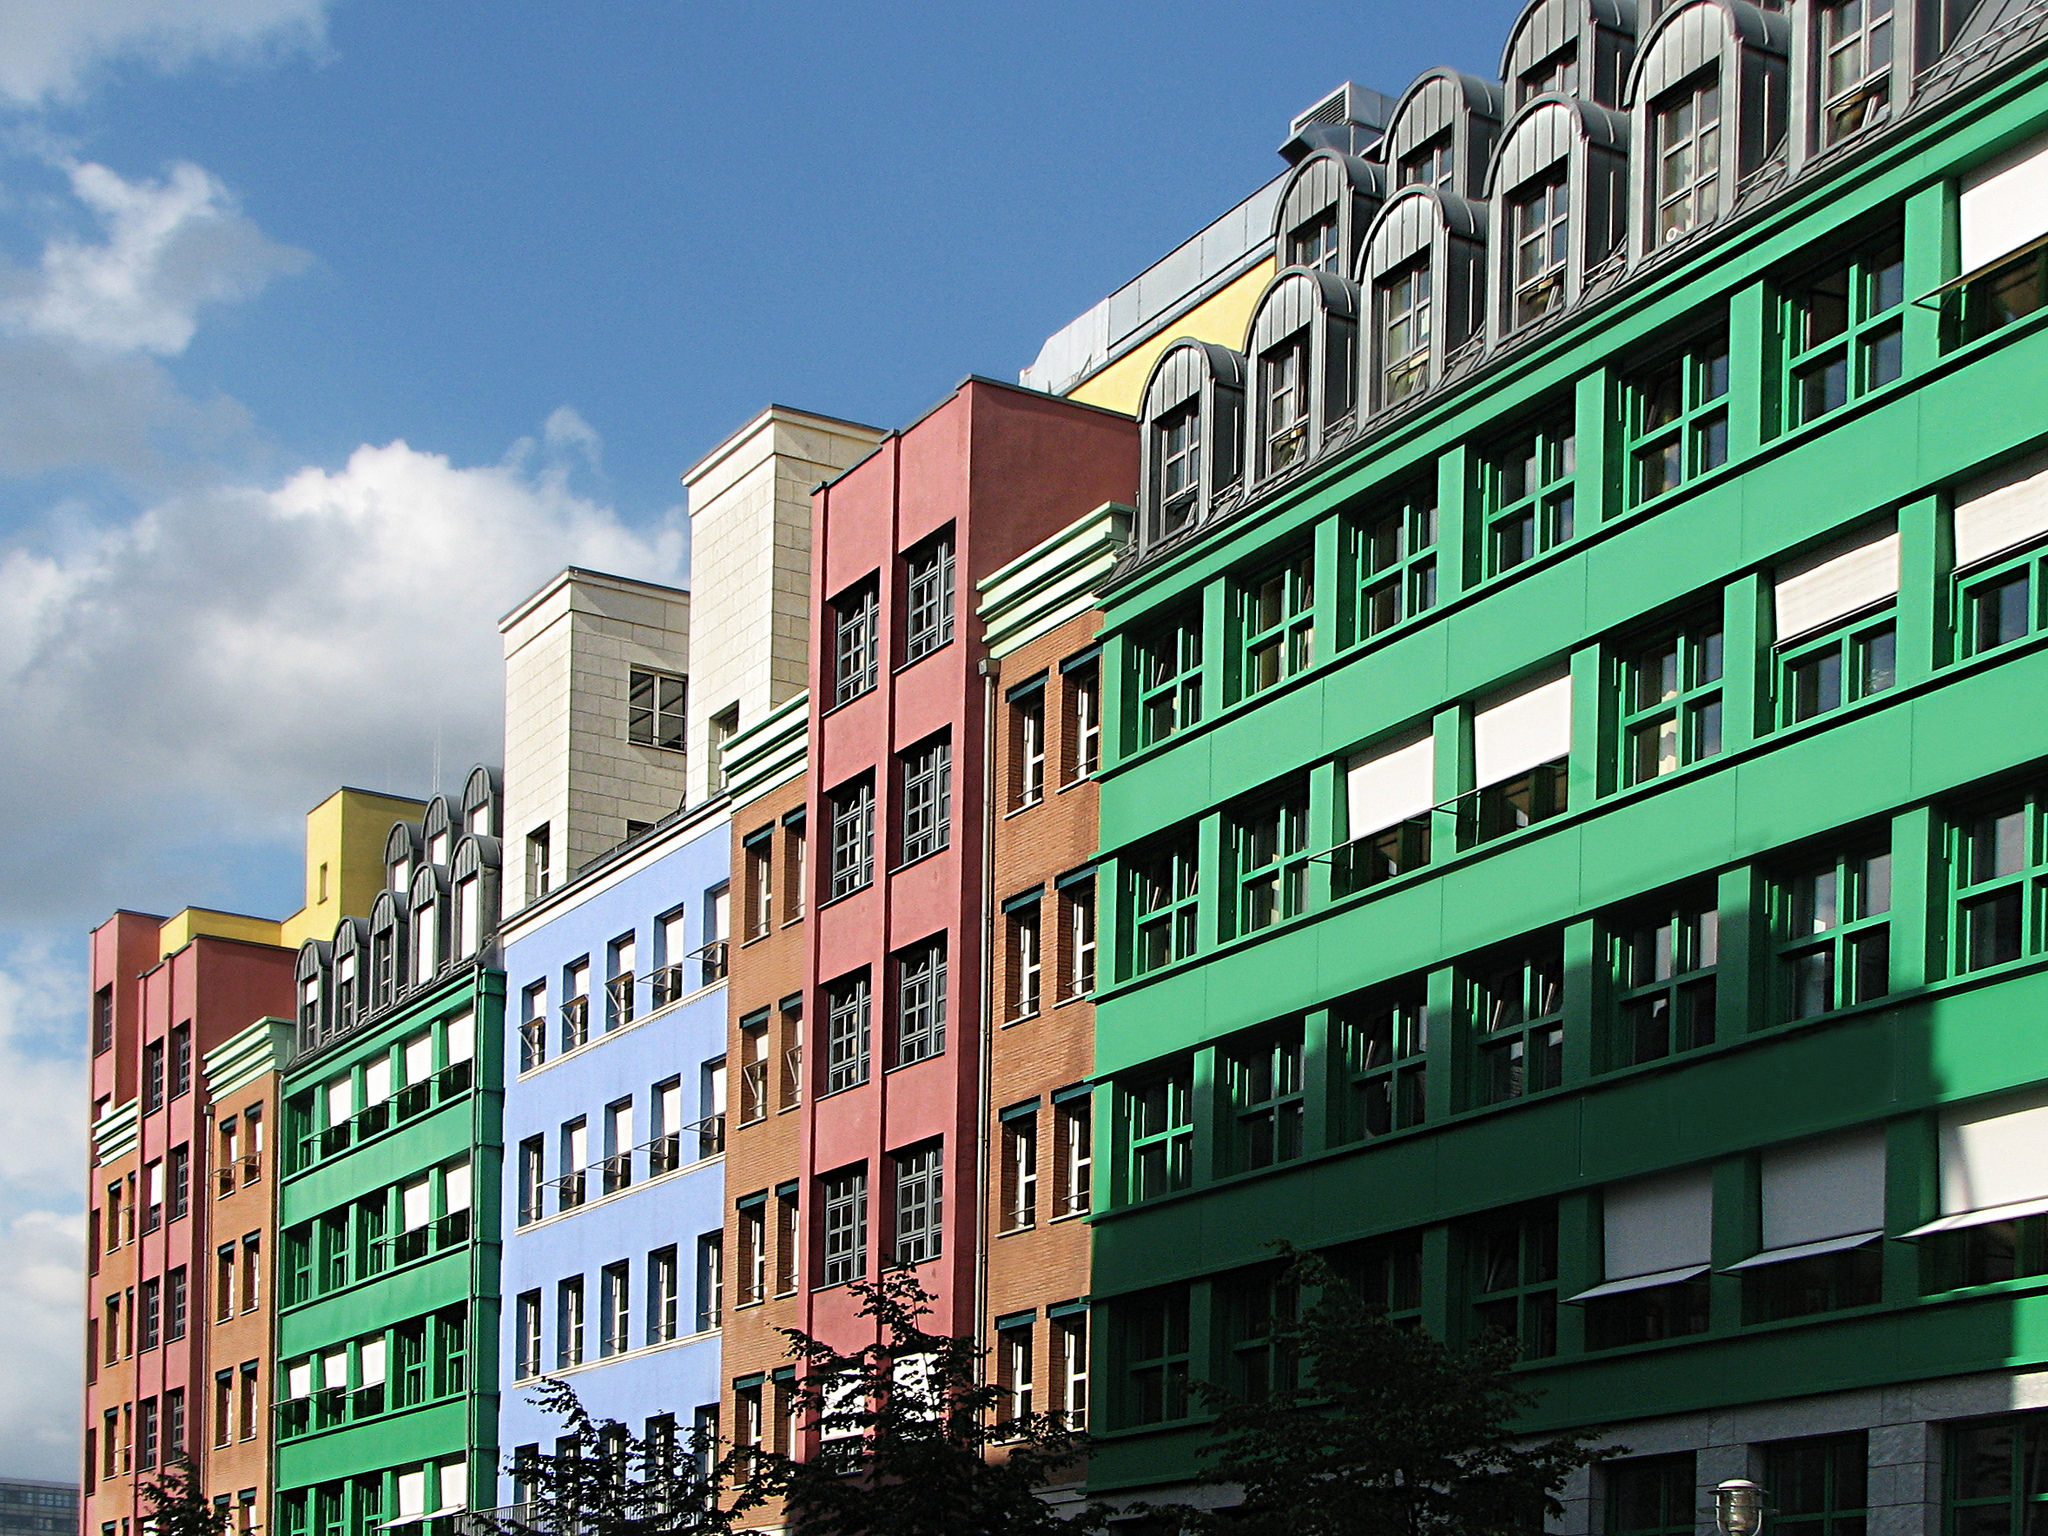 <p>Berlin is pushing forward innovative approaches to efficiency. Photo by VV Nincic/Flickr</p>